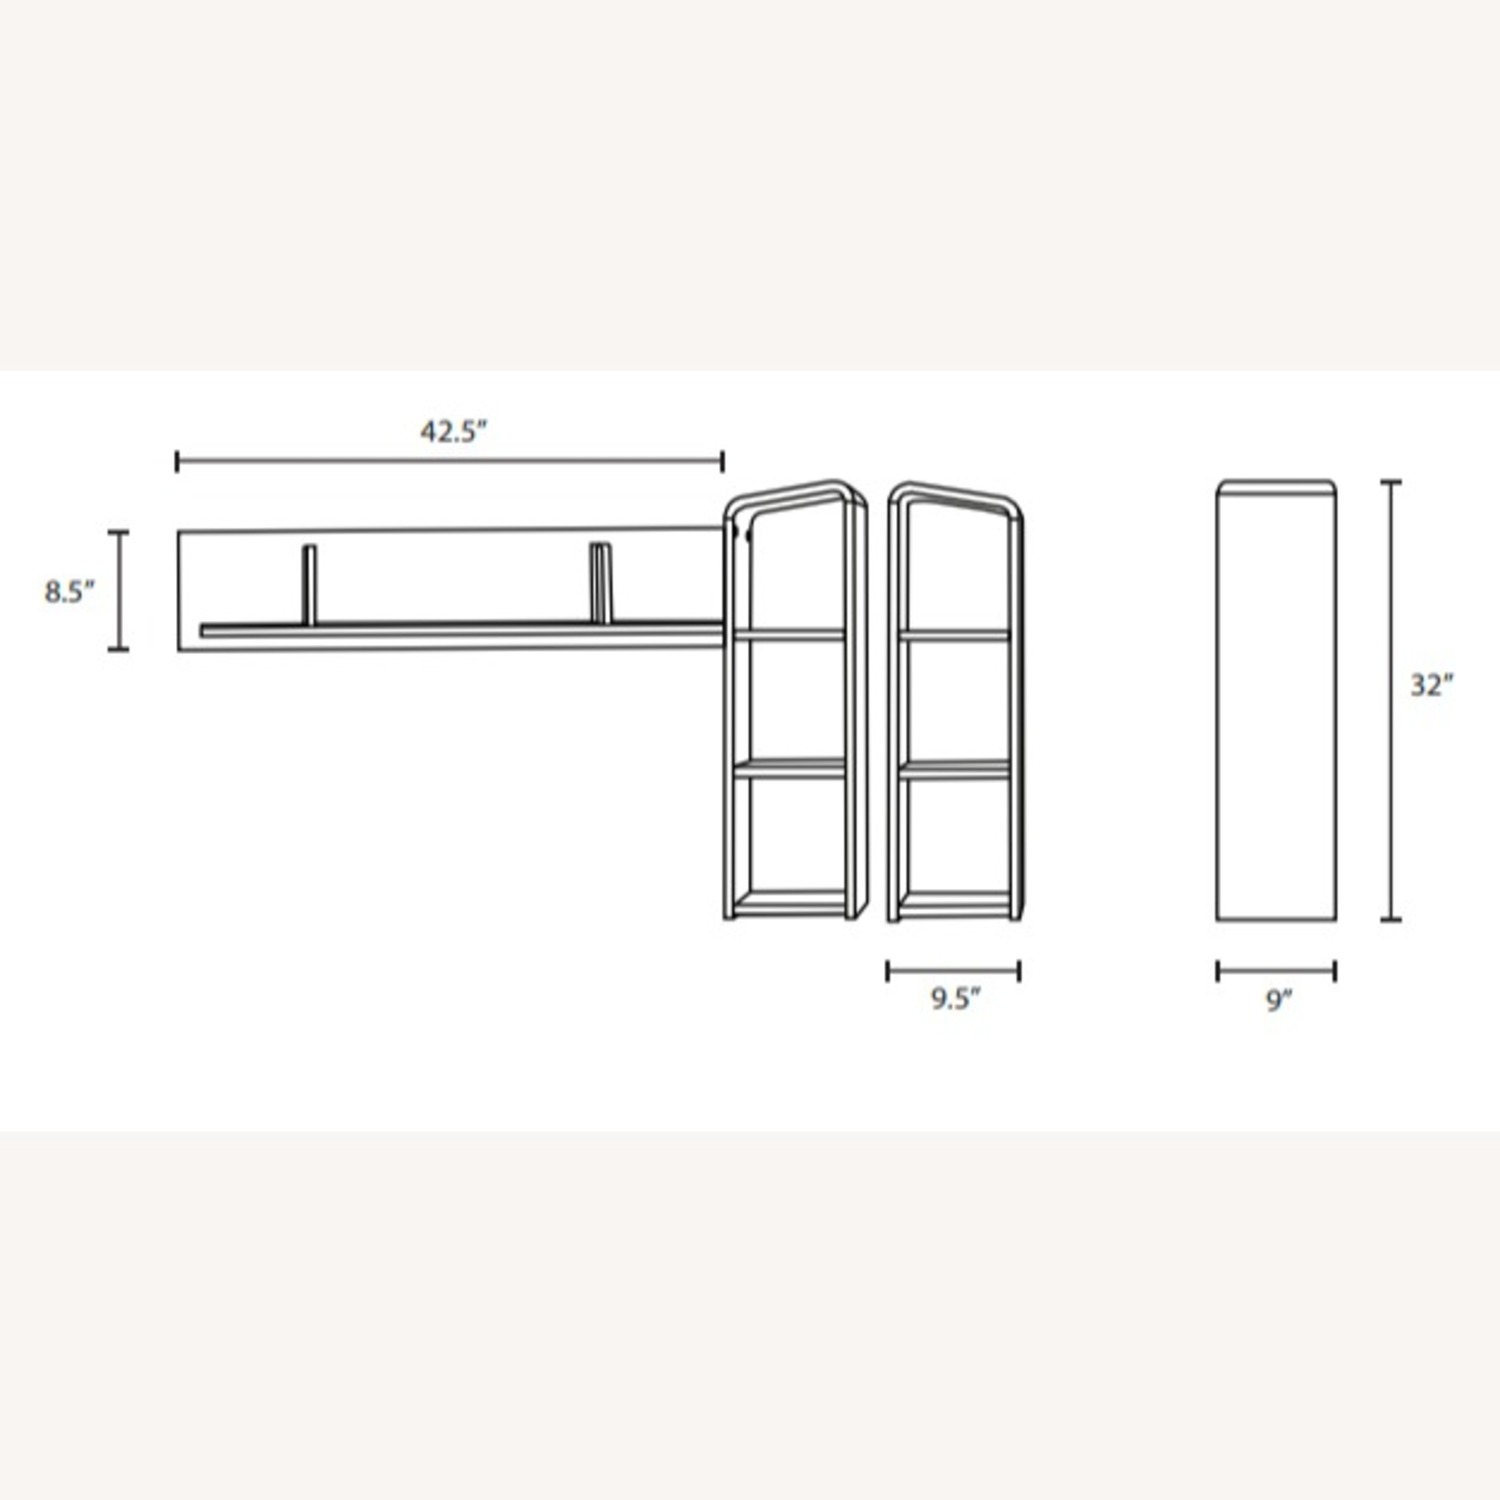 Wall Mounted Shelves In Walnut W/ Rounded Edges - image-3